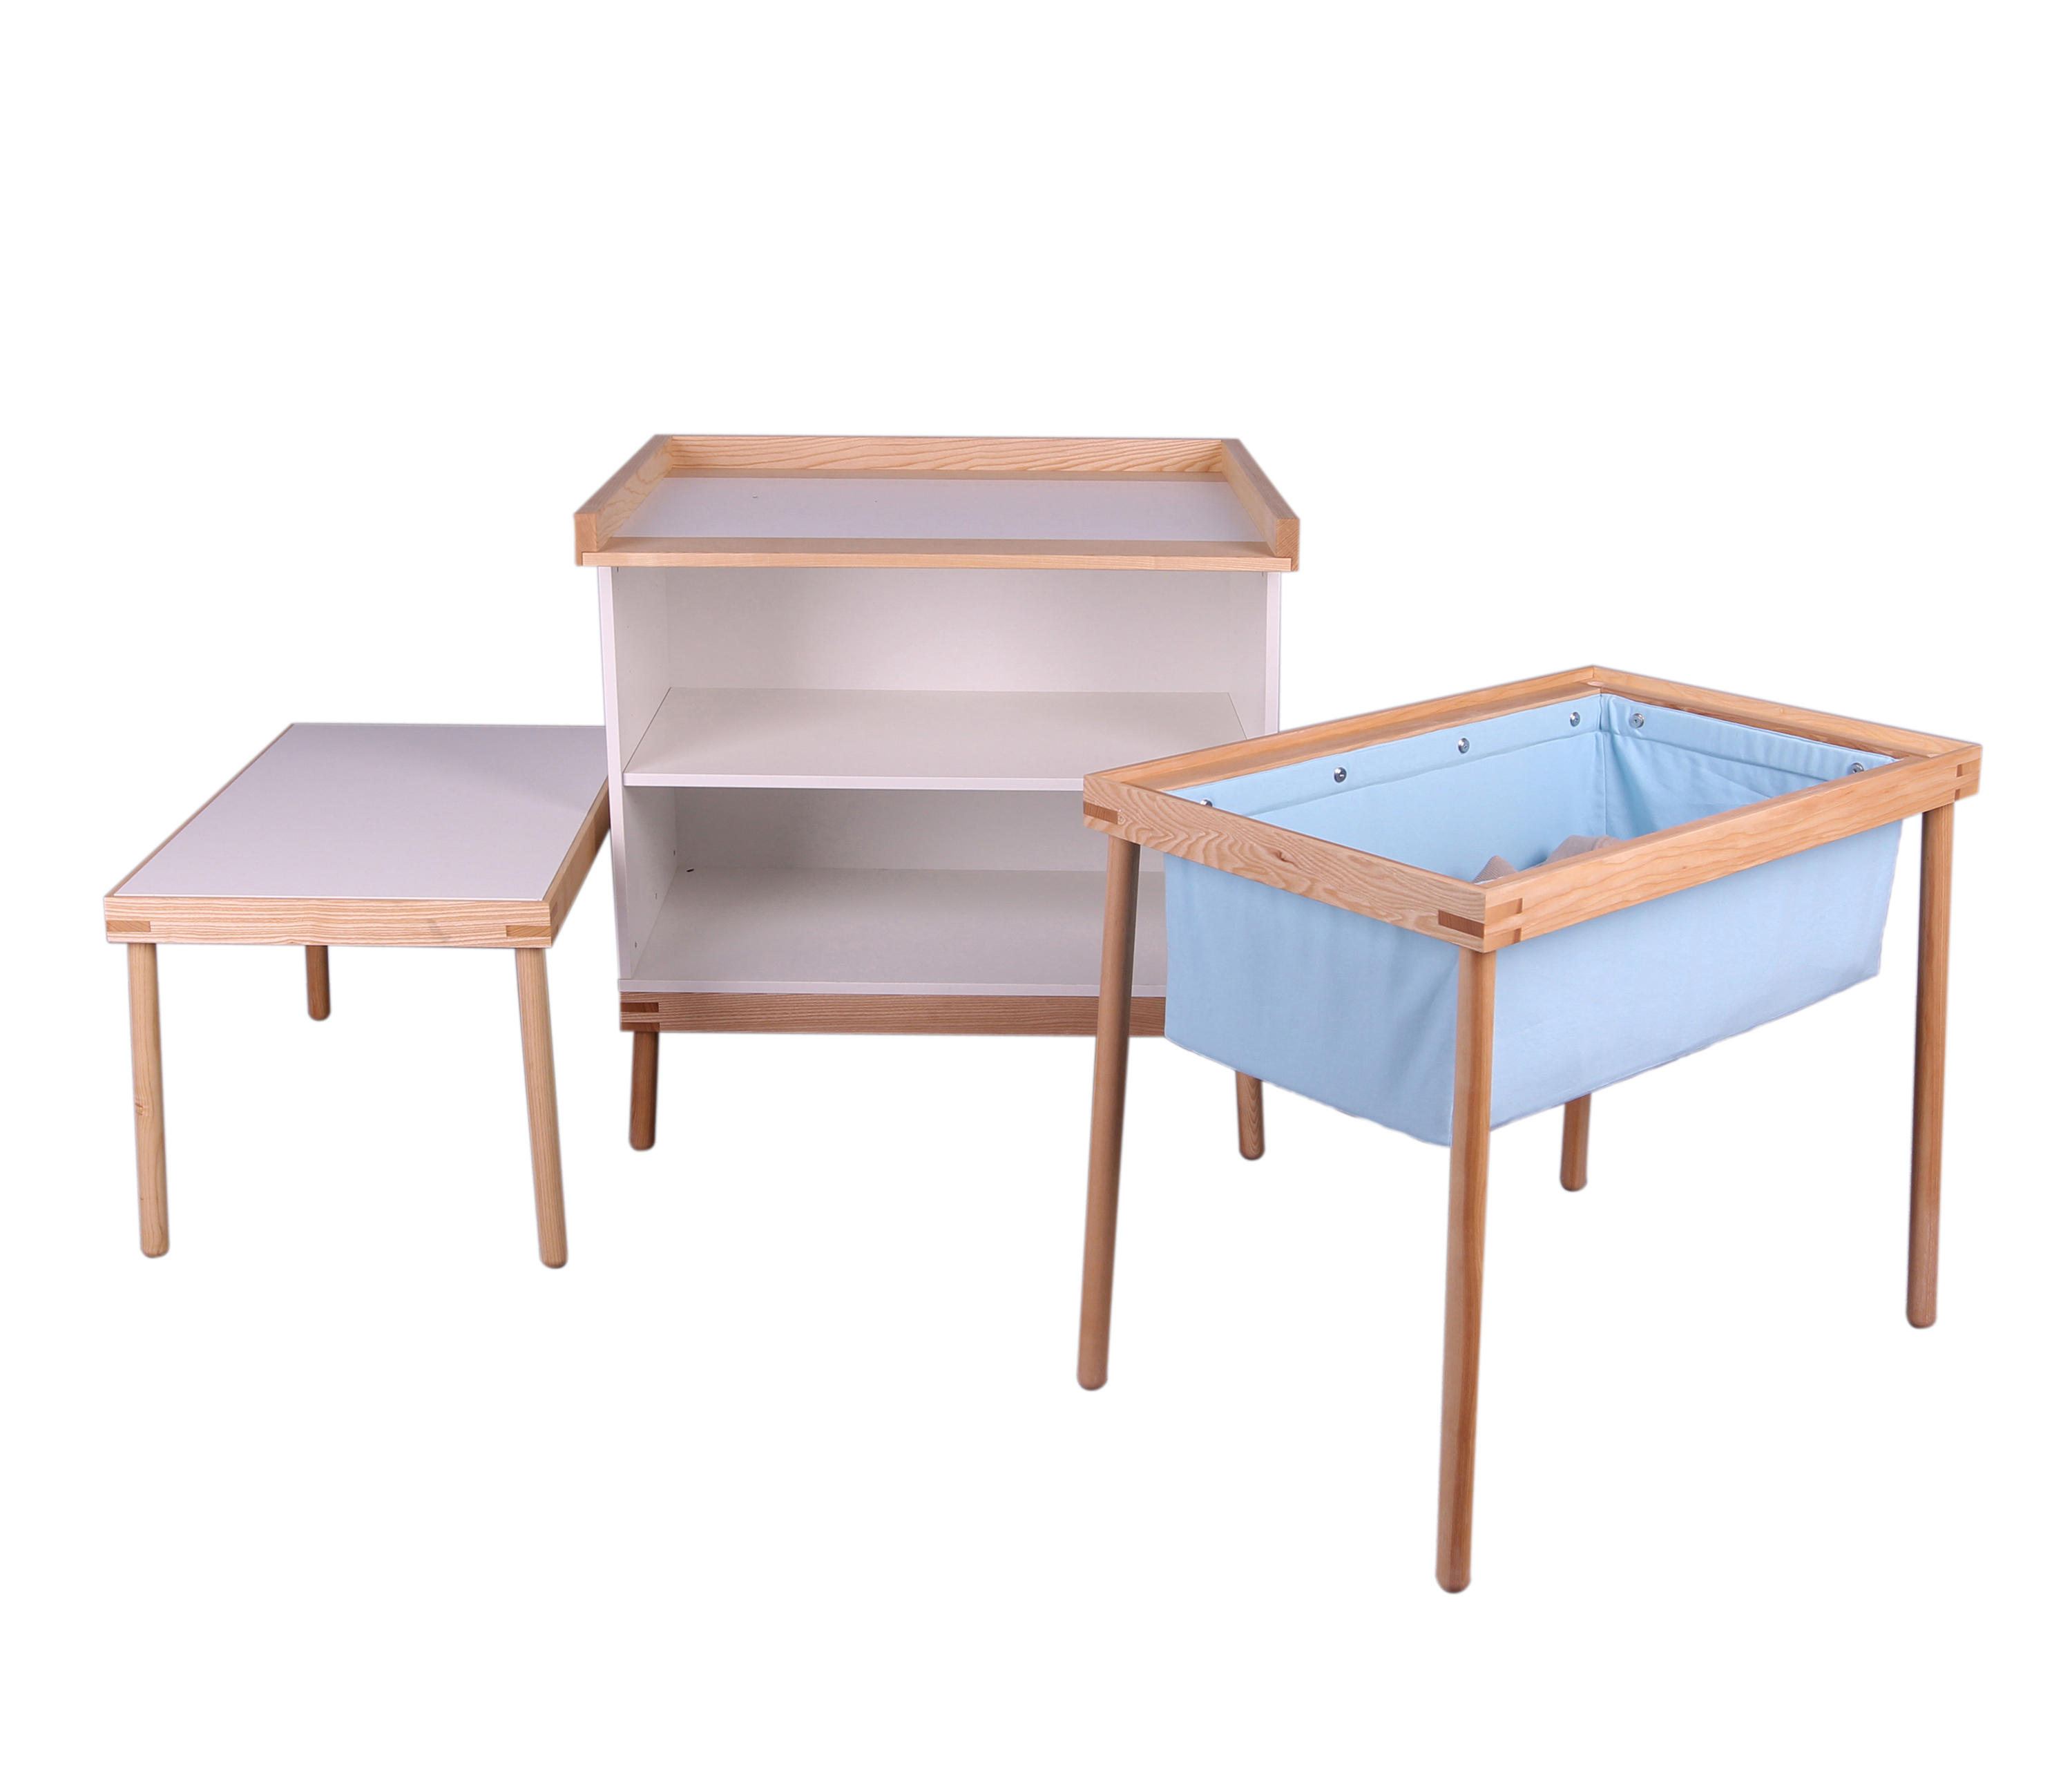 CHANGING TABLES - High quality designer CHANGING TABLES | Architonic